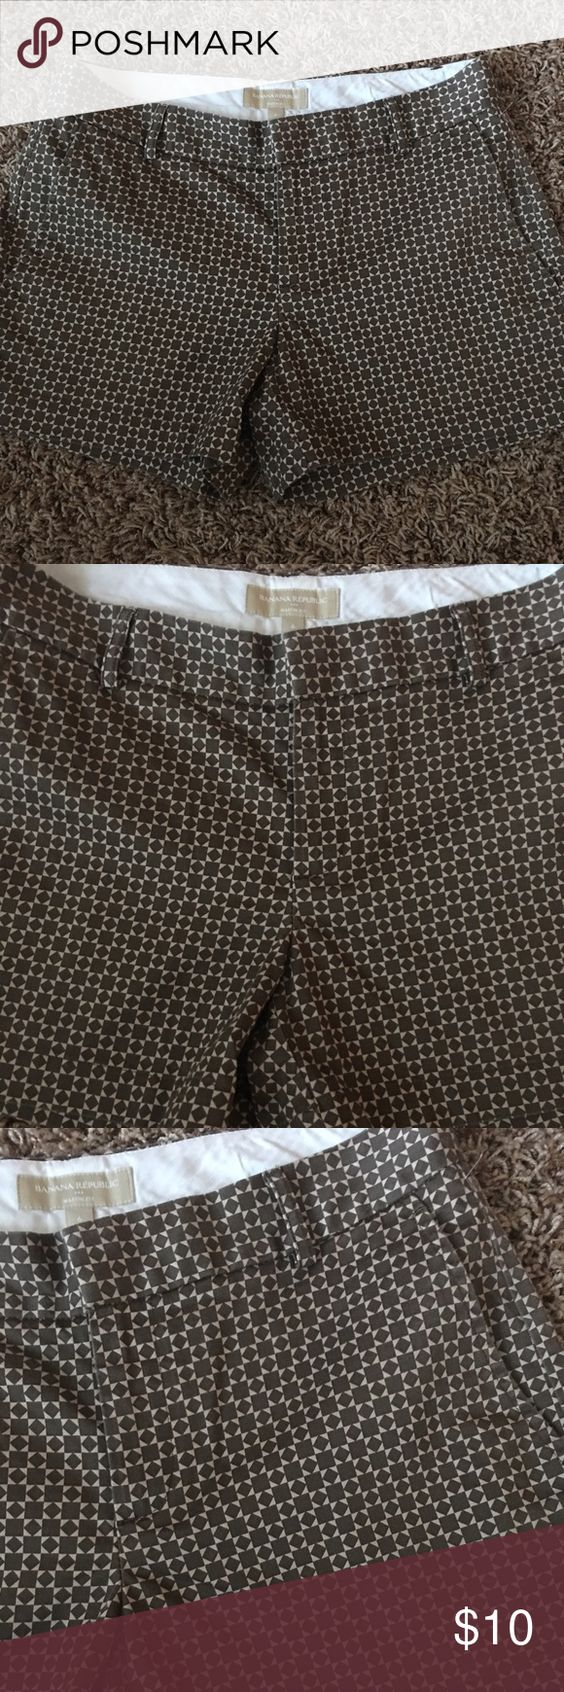 BANANA REPUBLIC SHORTS 💕FINAL SALE💕 Cotton shorts in very good condition, look new. Color brown and tan. Banana Republic Shorts